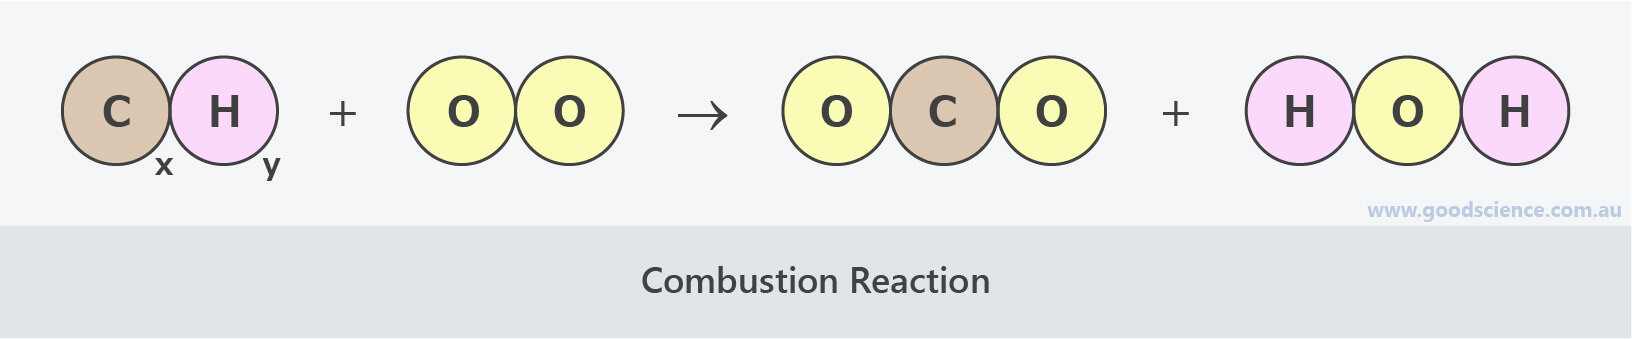 complete combustion reaction diagram